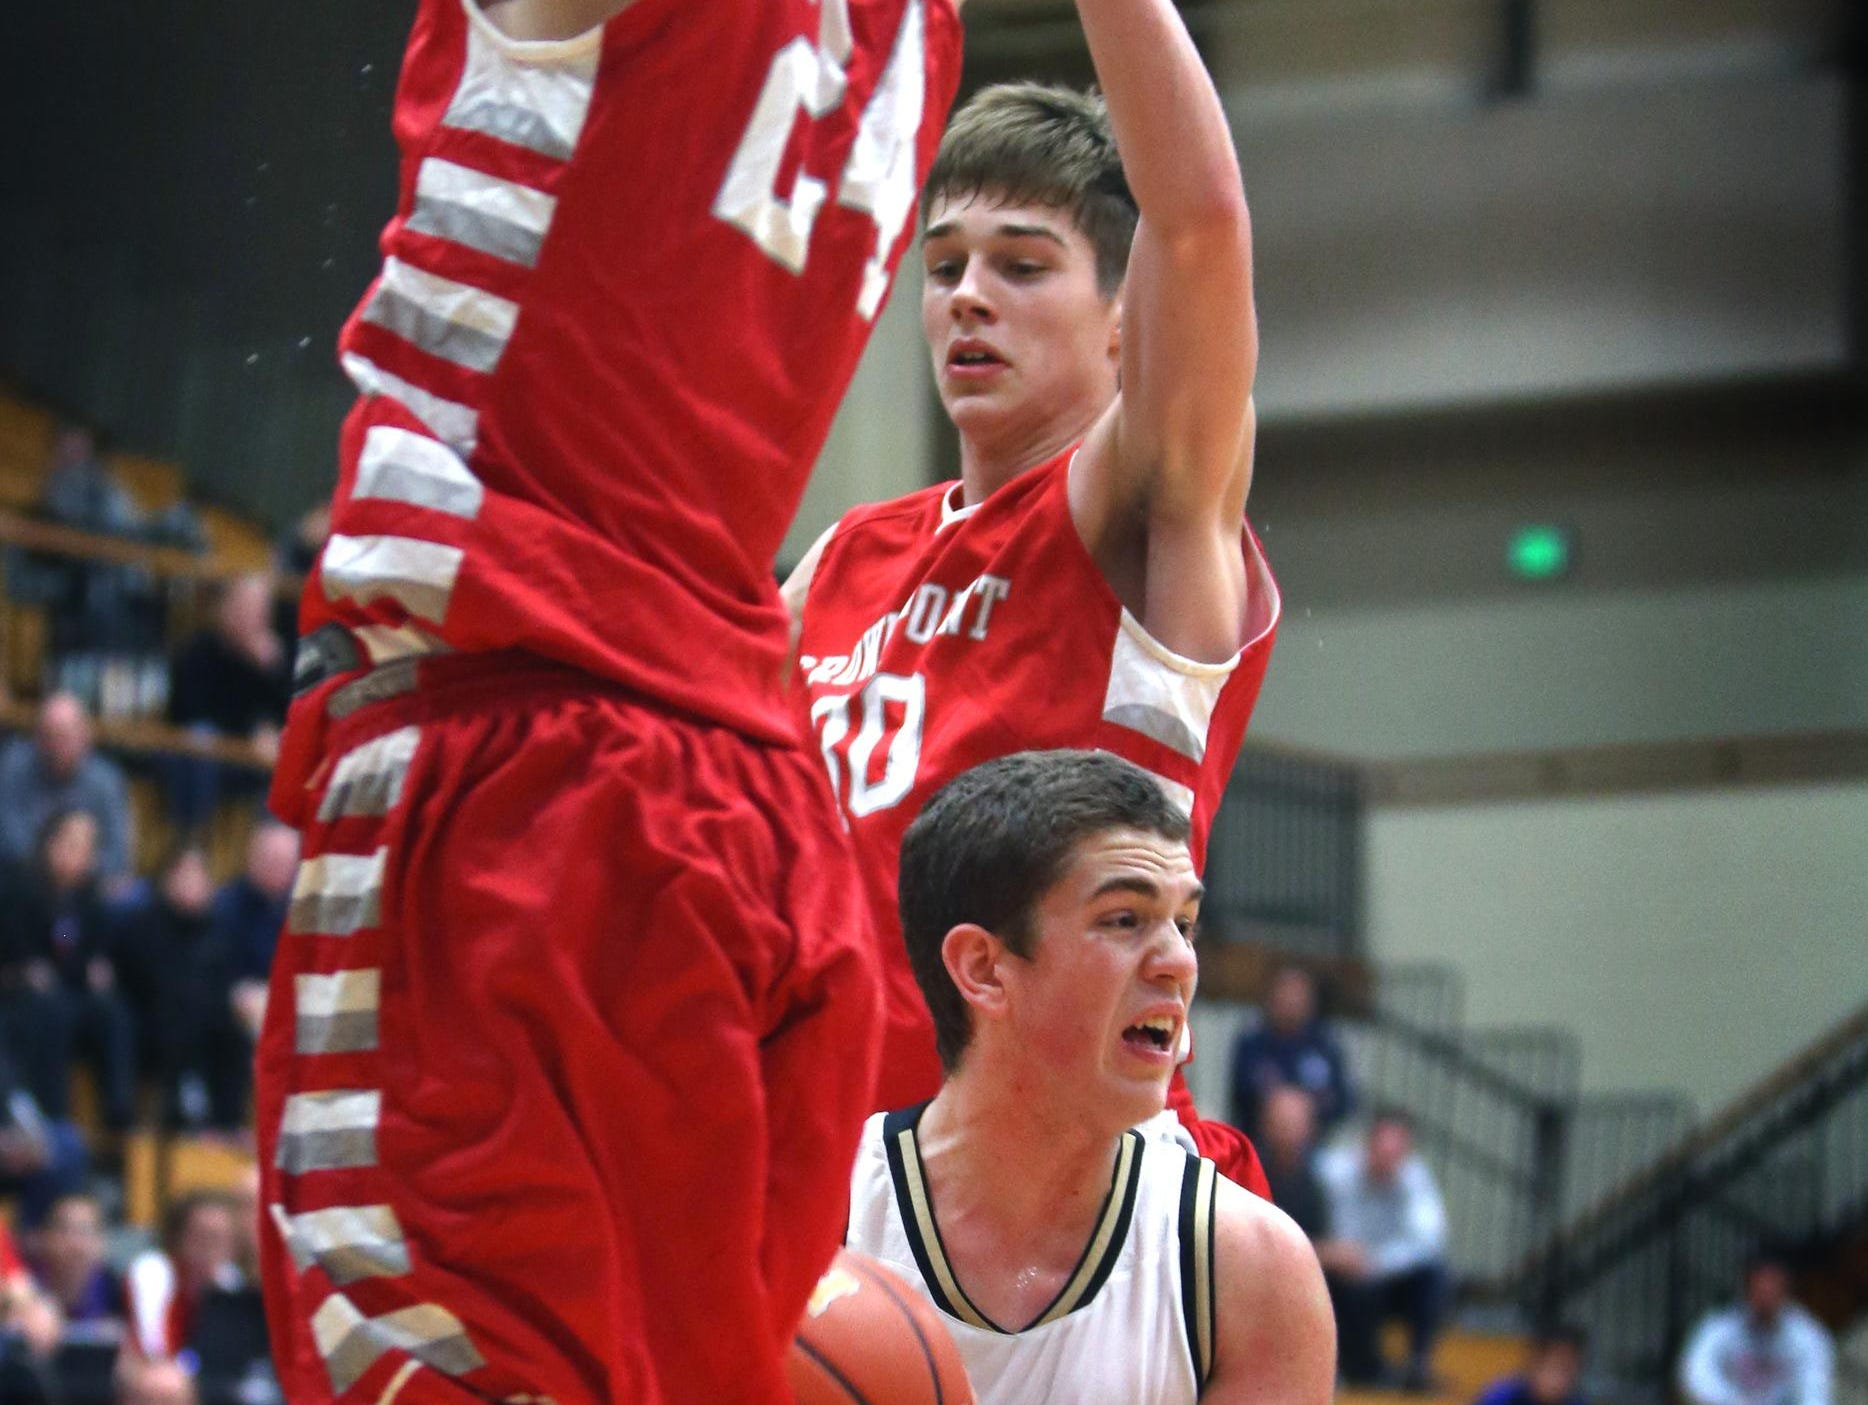 In this Dec. 30, 2014 file photo, Crown Point's Grant Gelon (right) and teammate Noah Morales defend against Noblesville's Sean Wilson.